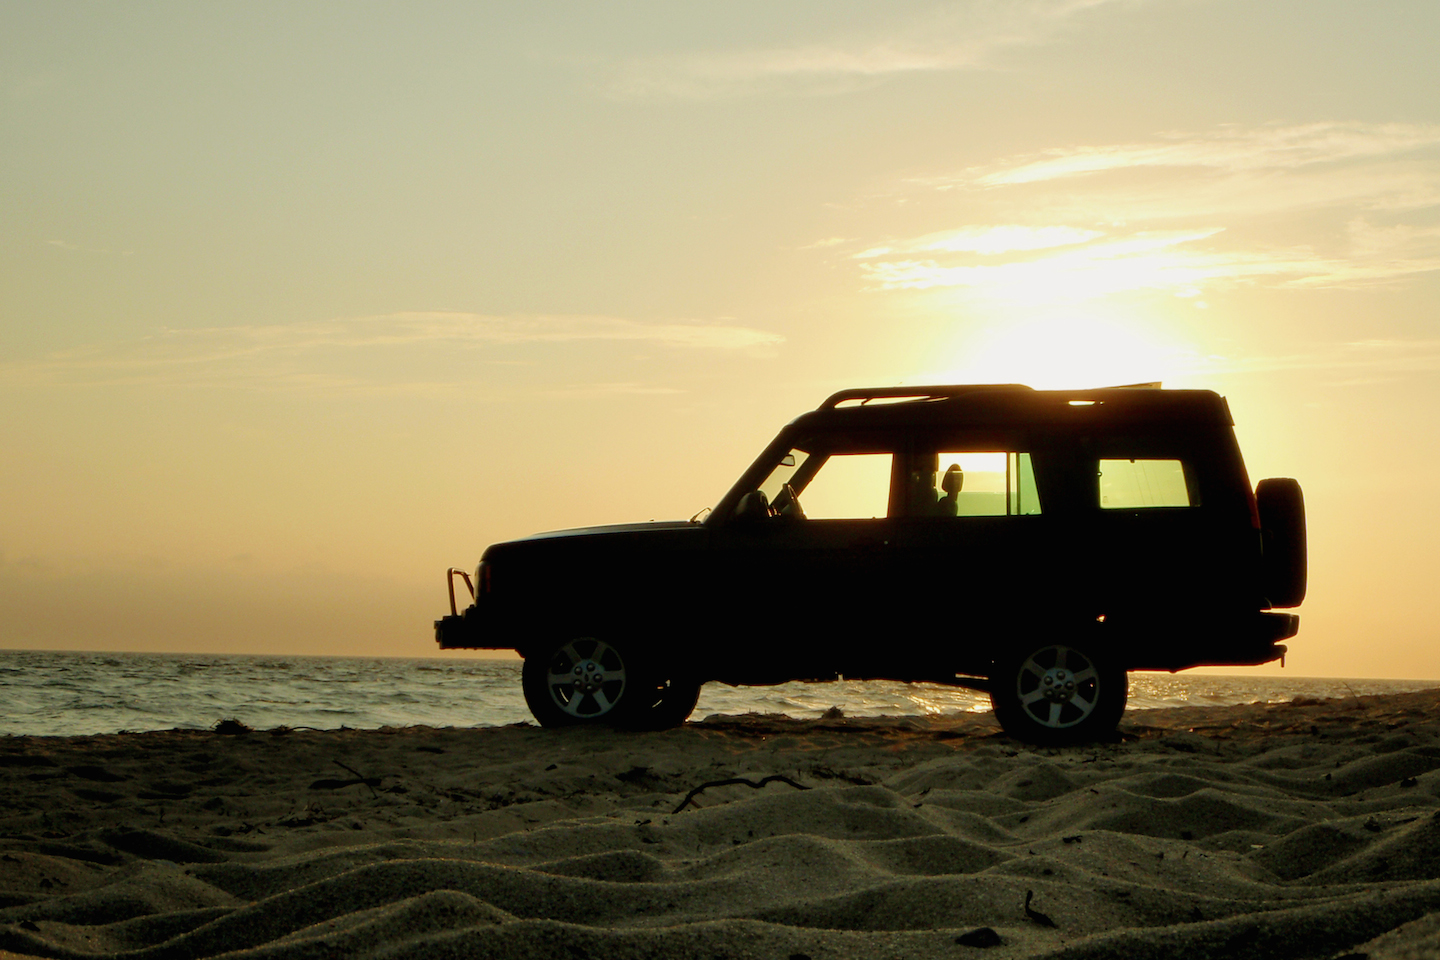 SUV sitting in the sand